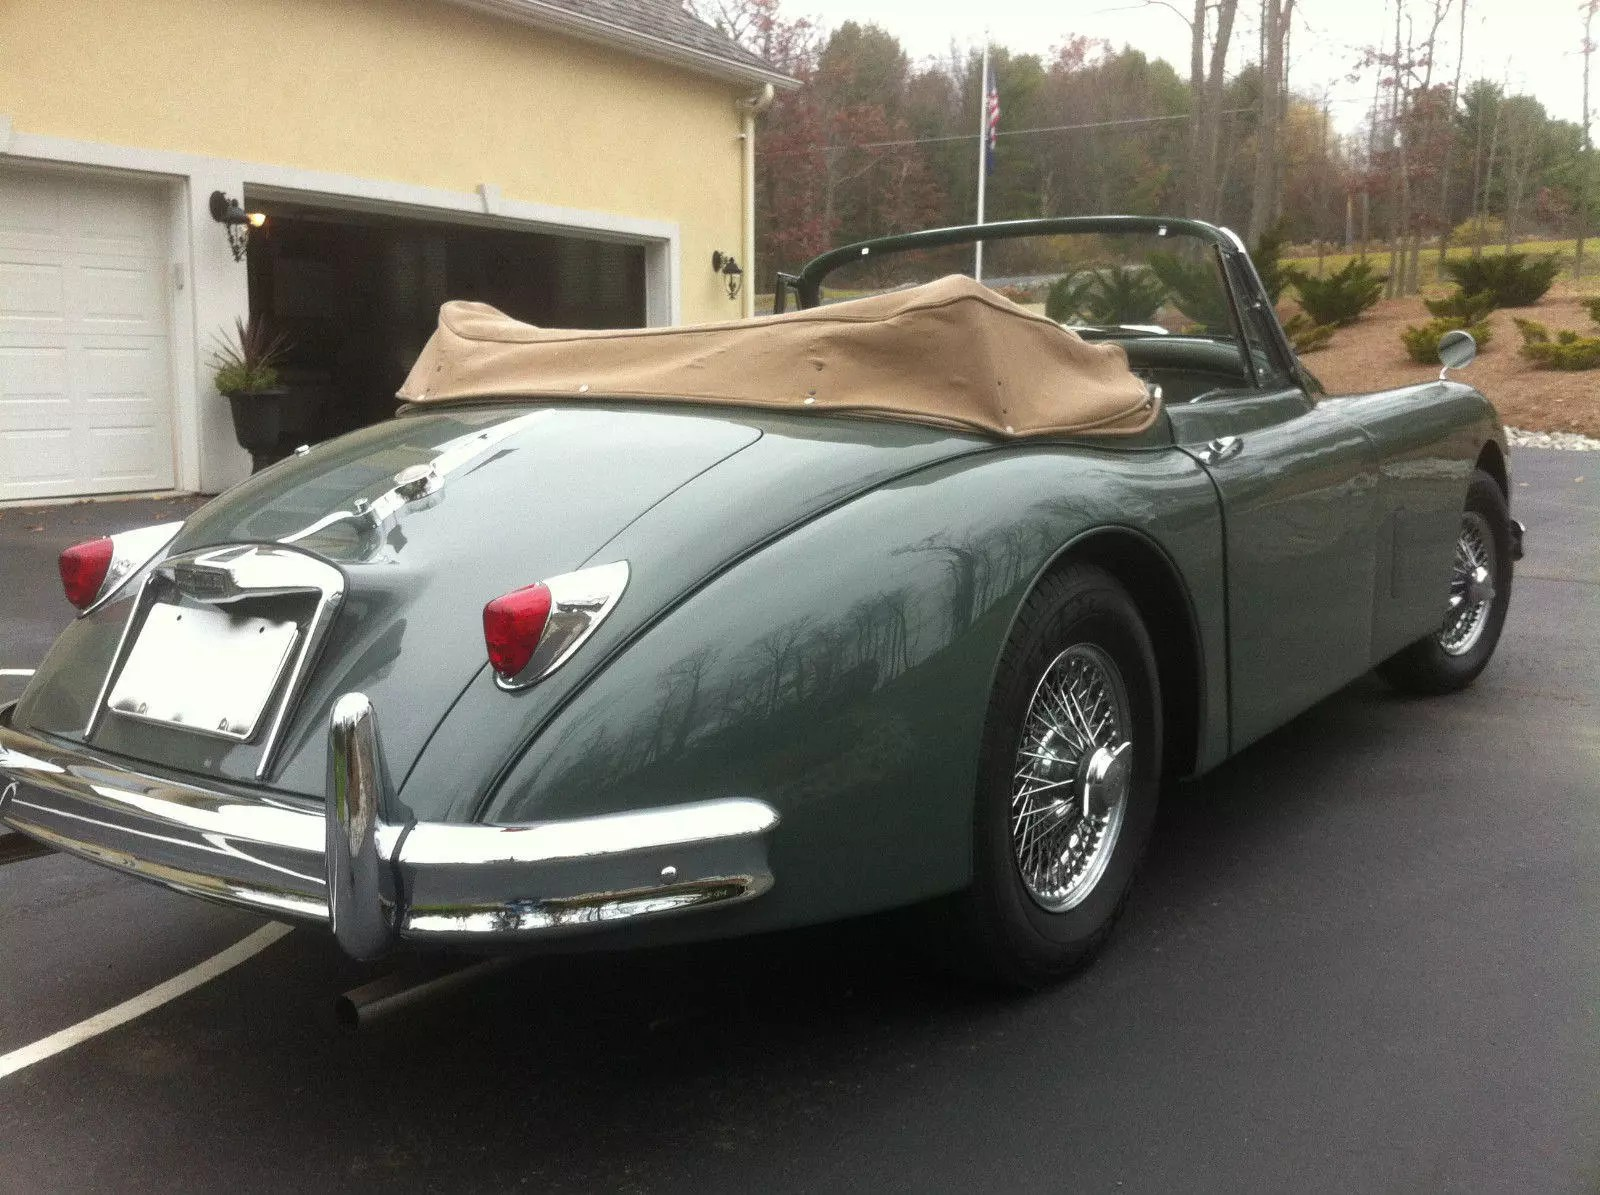 hight resolution of the 1958 xk150 came with two engines the dohc jaguar straight 6 rated at 180 sae bhp at 5750 rpm was the early production engine later most were running